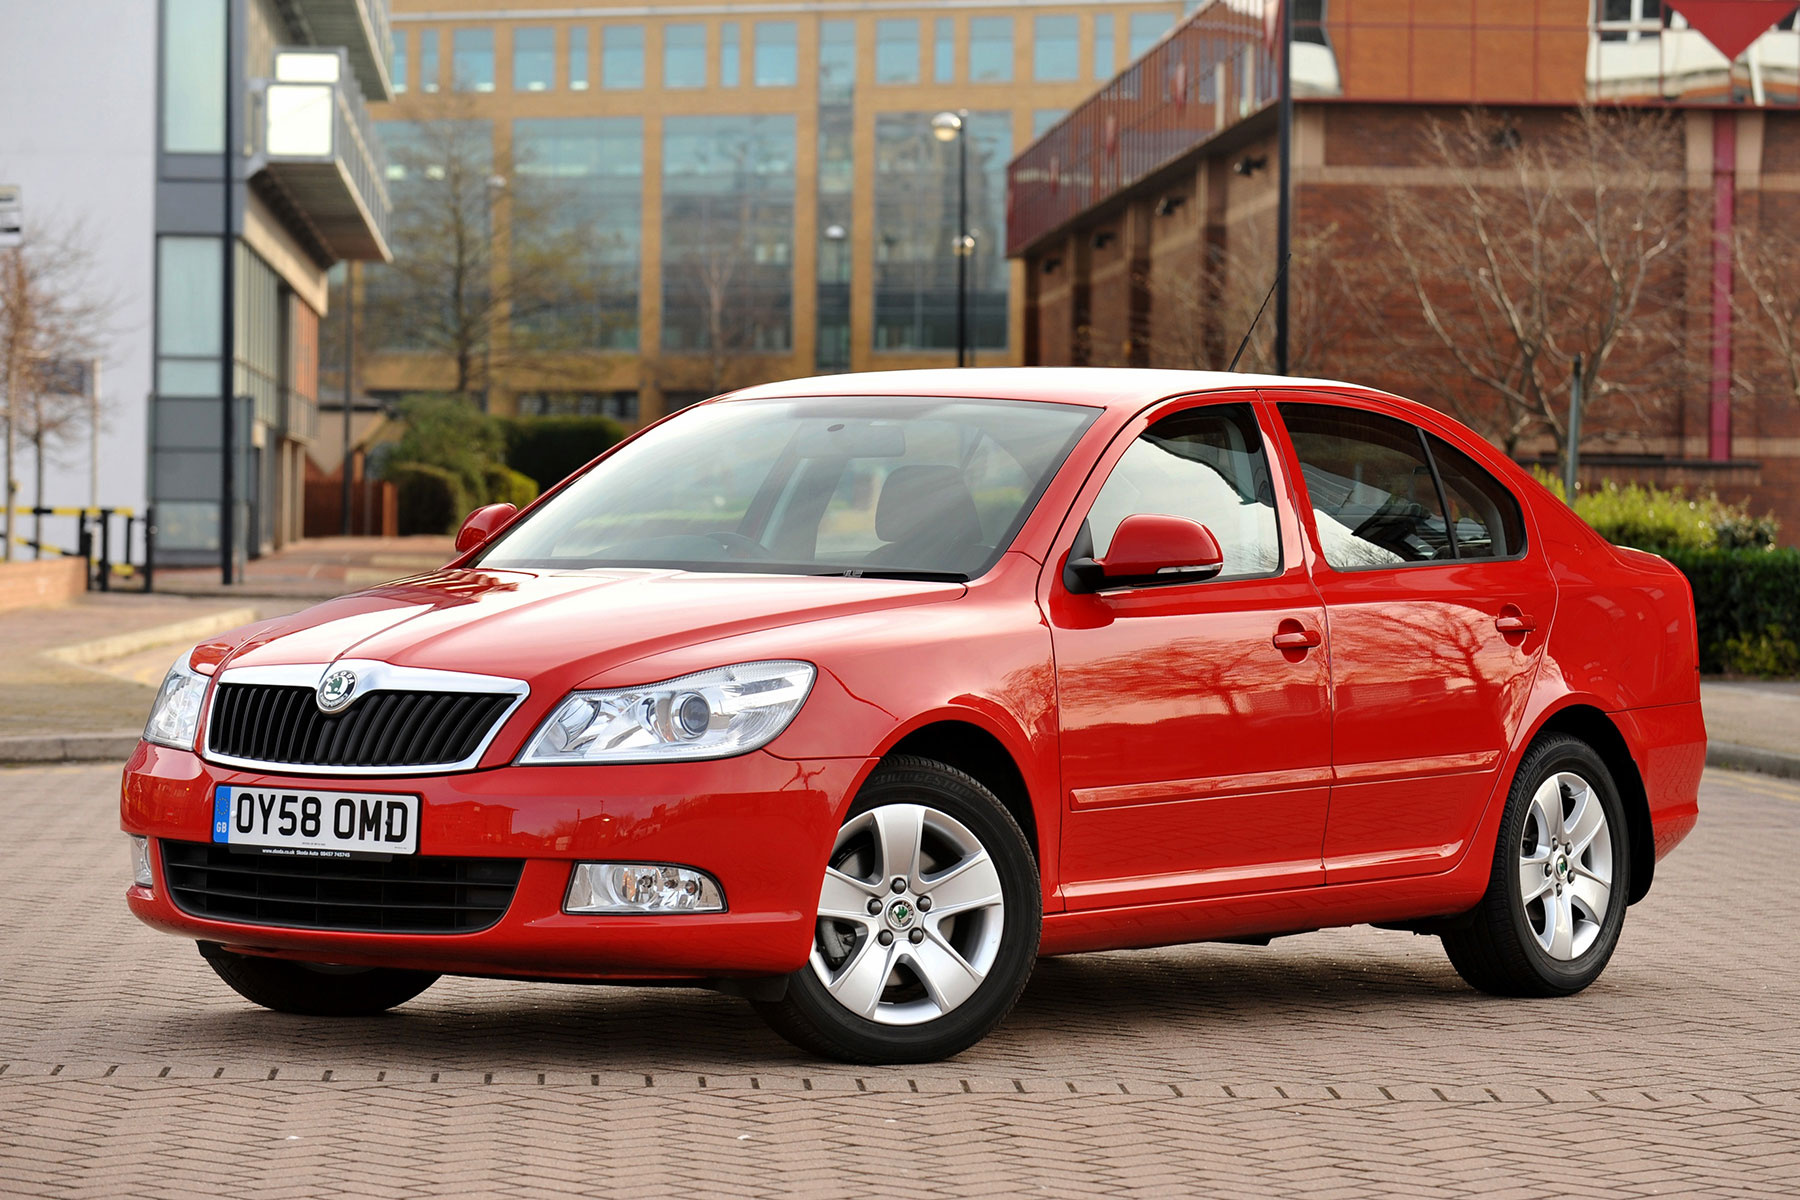 Top five family used cars